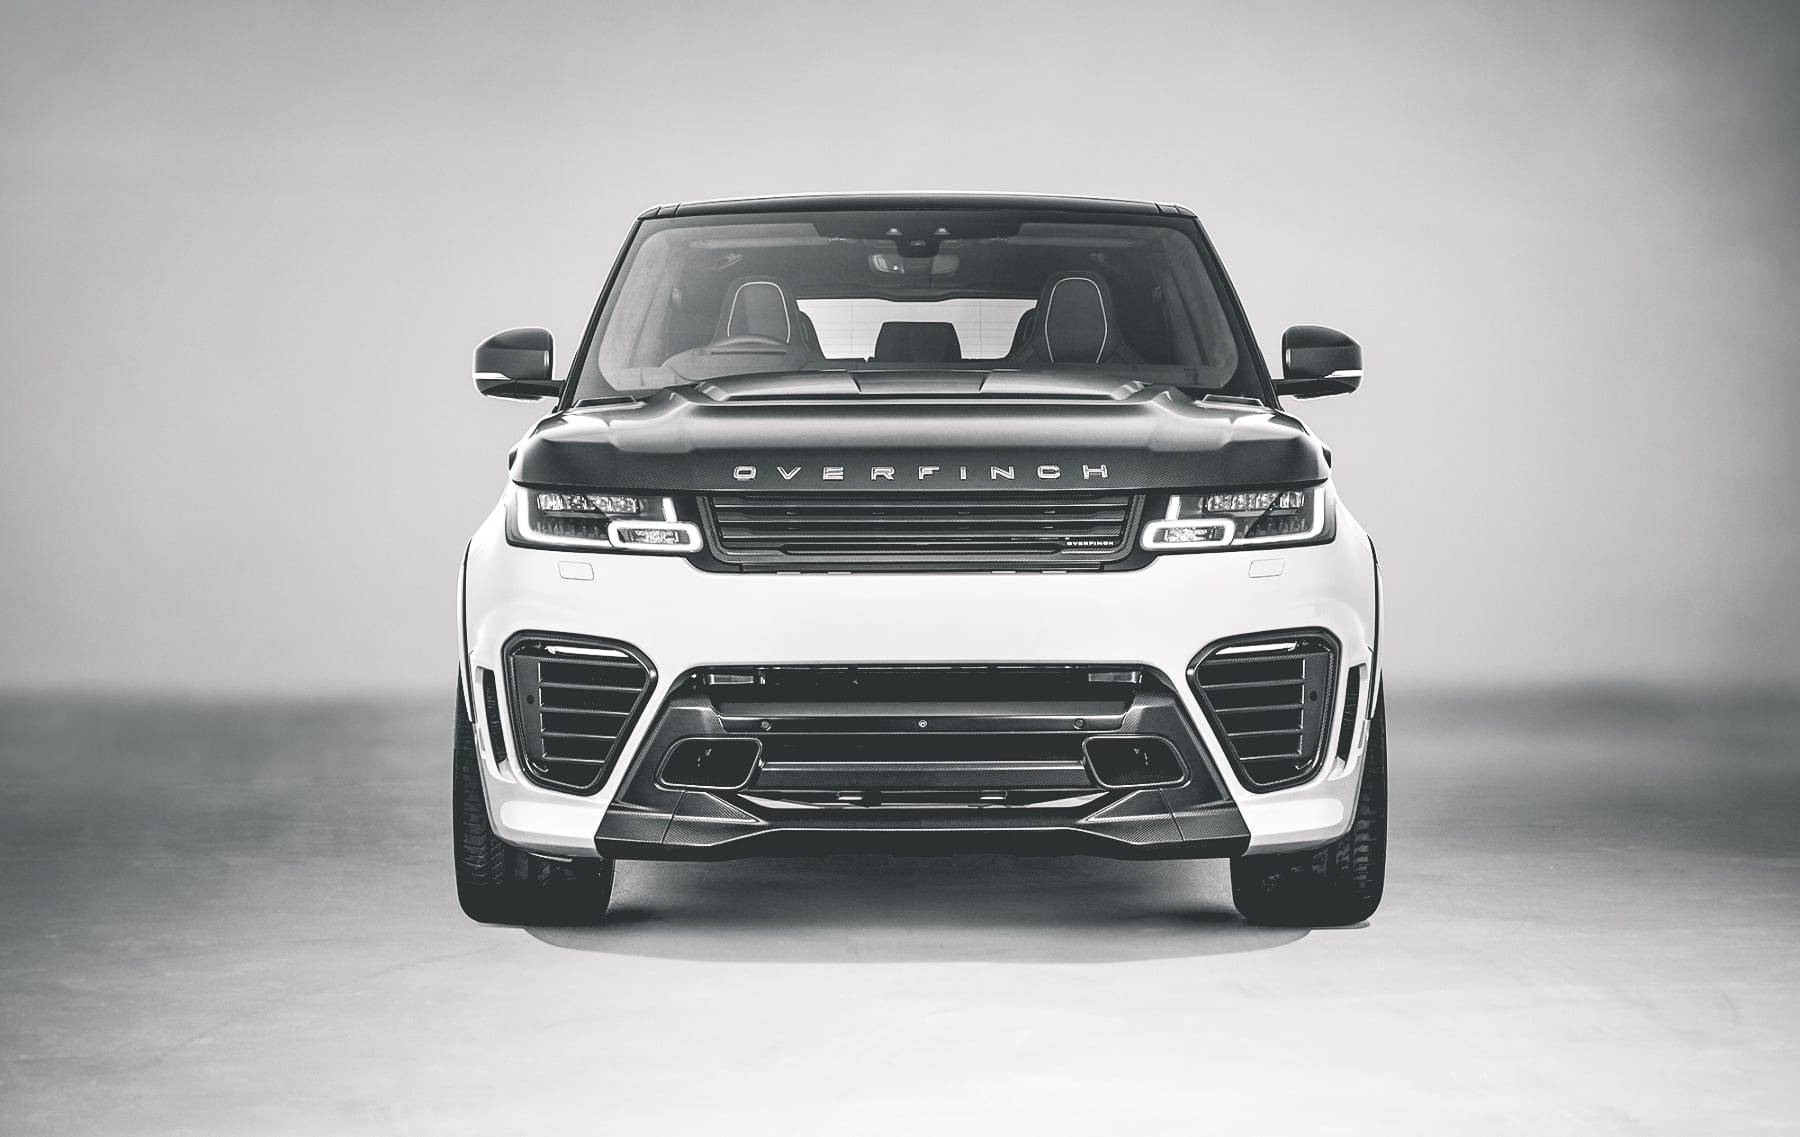 Overfinch geeft Range Rover Super Sport een brute make-over